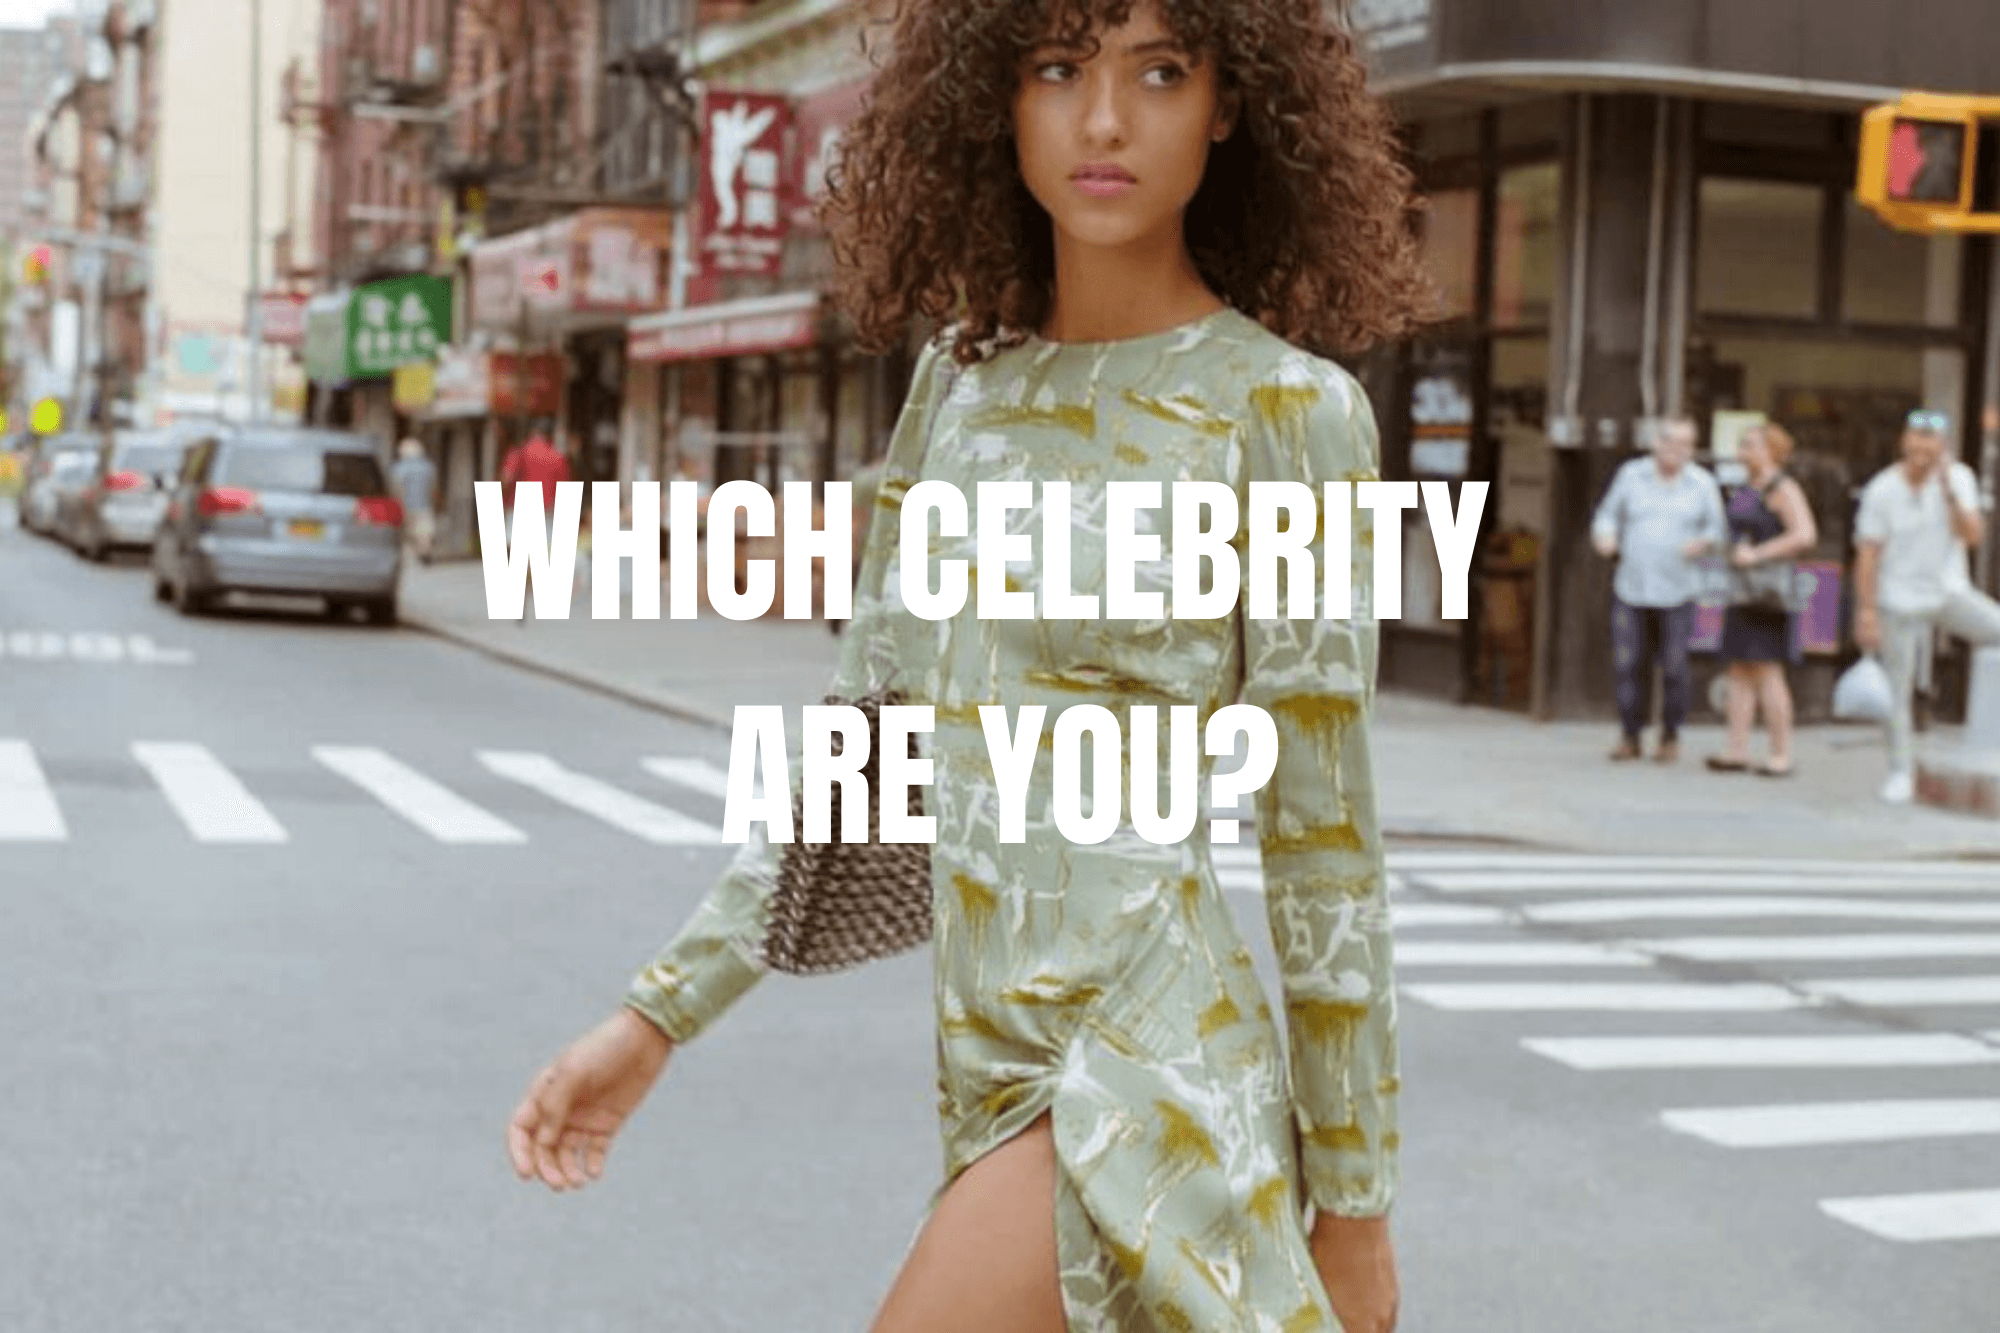 Which celebrity are you?